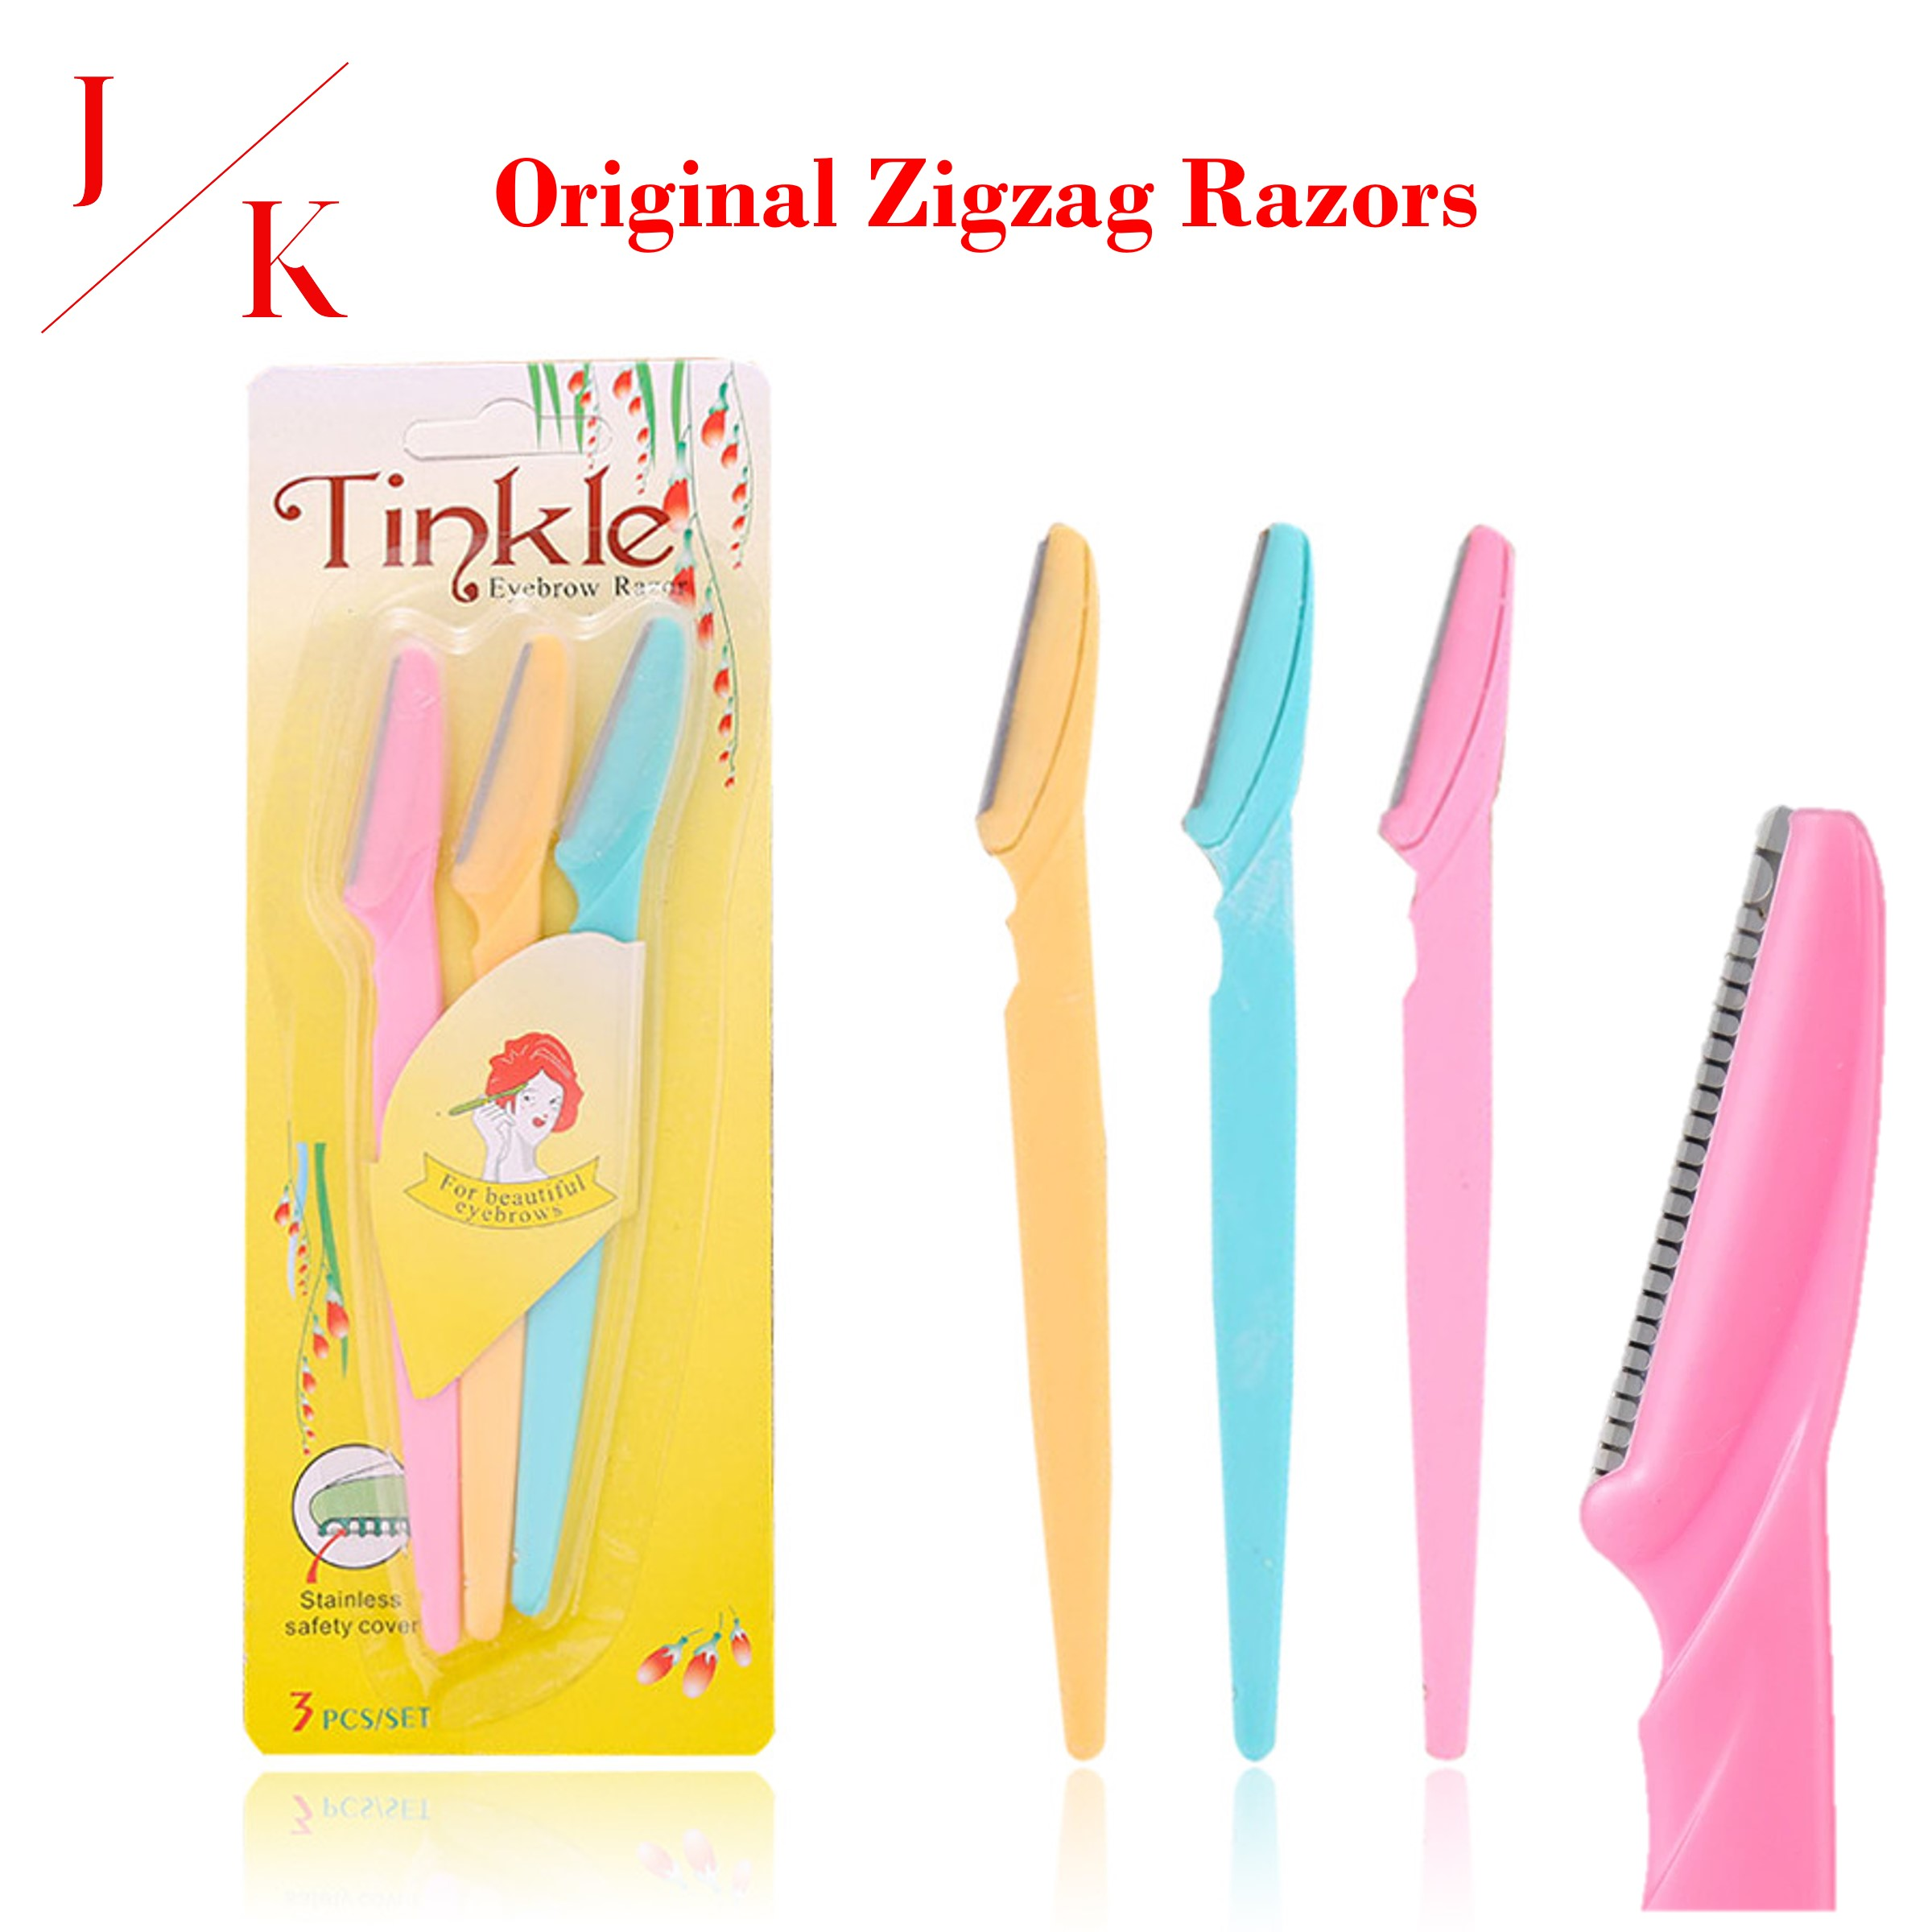 Tinkle Eyebrow Razor Face hair Removal Facial Hair Remover Facial Razor Lip Razor Beauty Tool Eyebrow Trimmer and Shaper Pain free Alternative for Beautiful Eyebrows (Pack of 3)